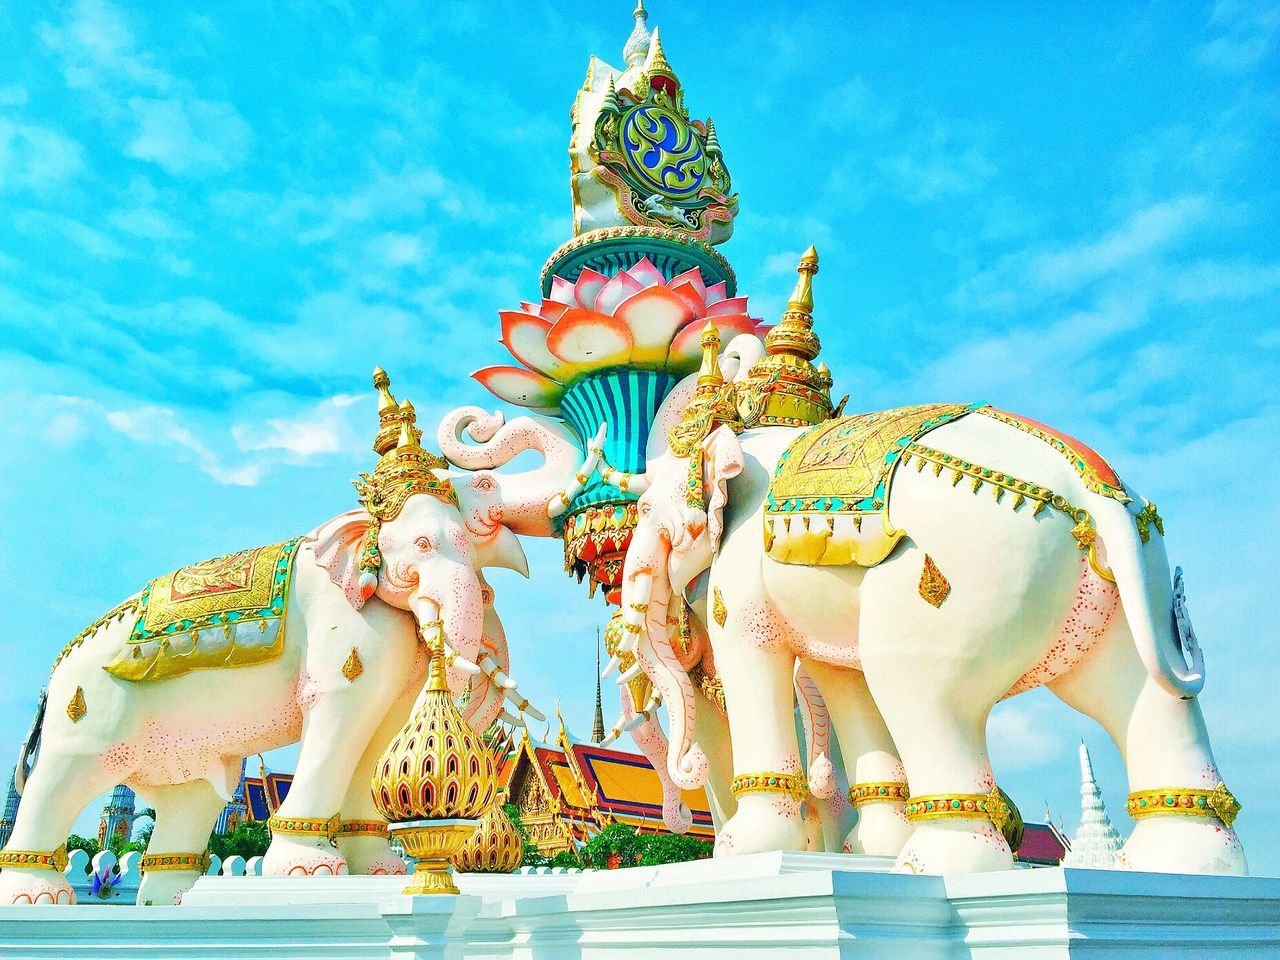 Bangkok Thailand by Jil Diamante. Statue Sky Low Angle View Sculpture Outdoors No People Day Chinese Dragon Grand Palace Bangkok Thailand Elephant The EyeEm Collection Travel Asian Culture ASIA